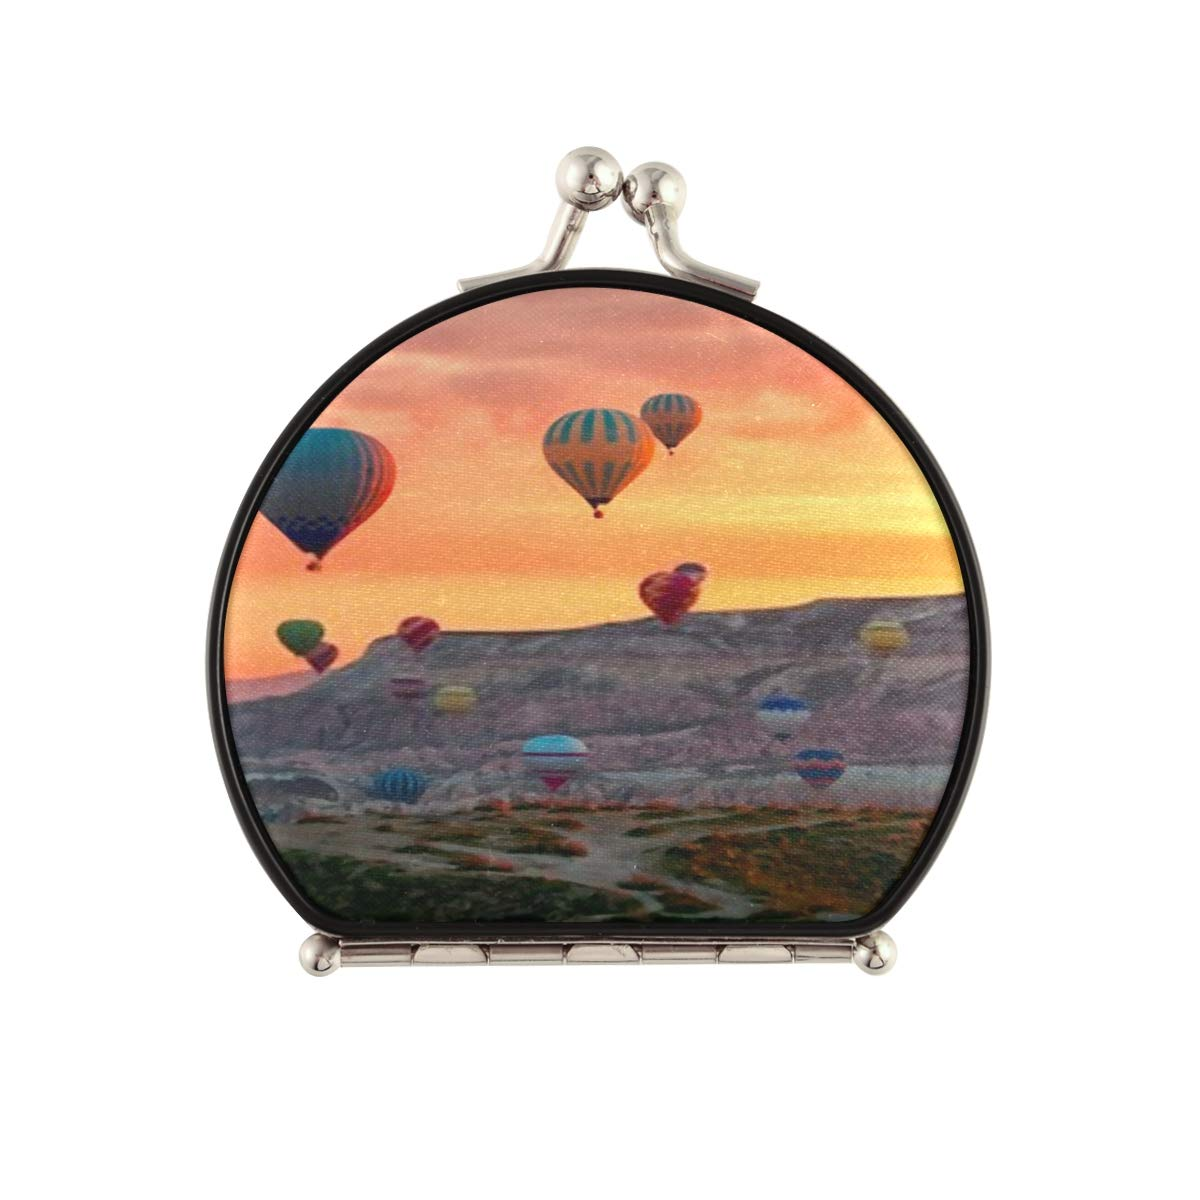 Magnifying Max 48% OFF Manufacturer regenerated product Compact Cosmetic Mirror Hot Air Flying Balloons Tour